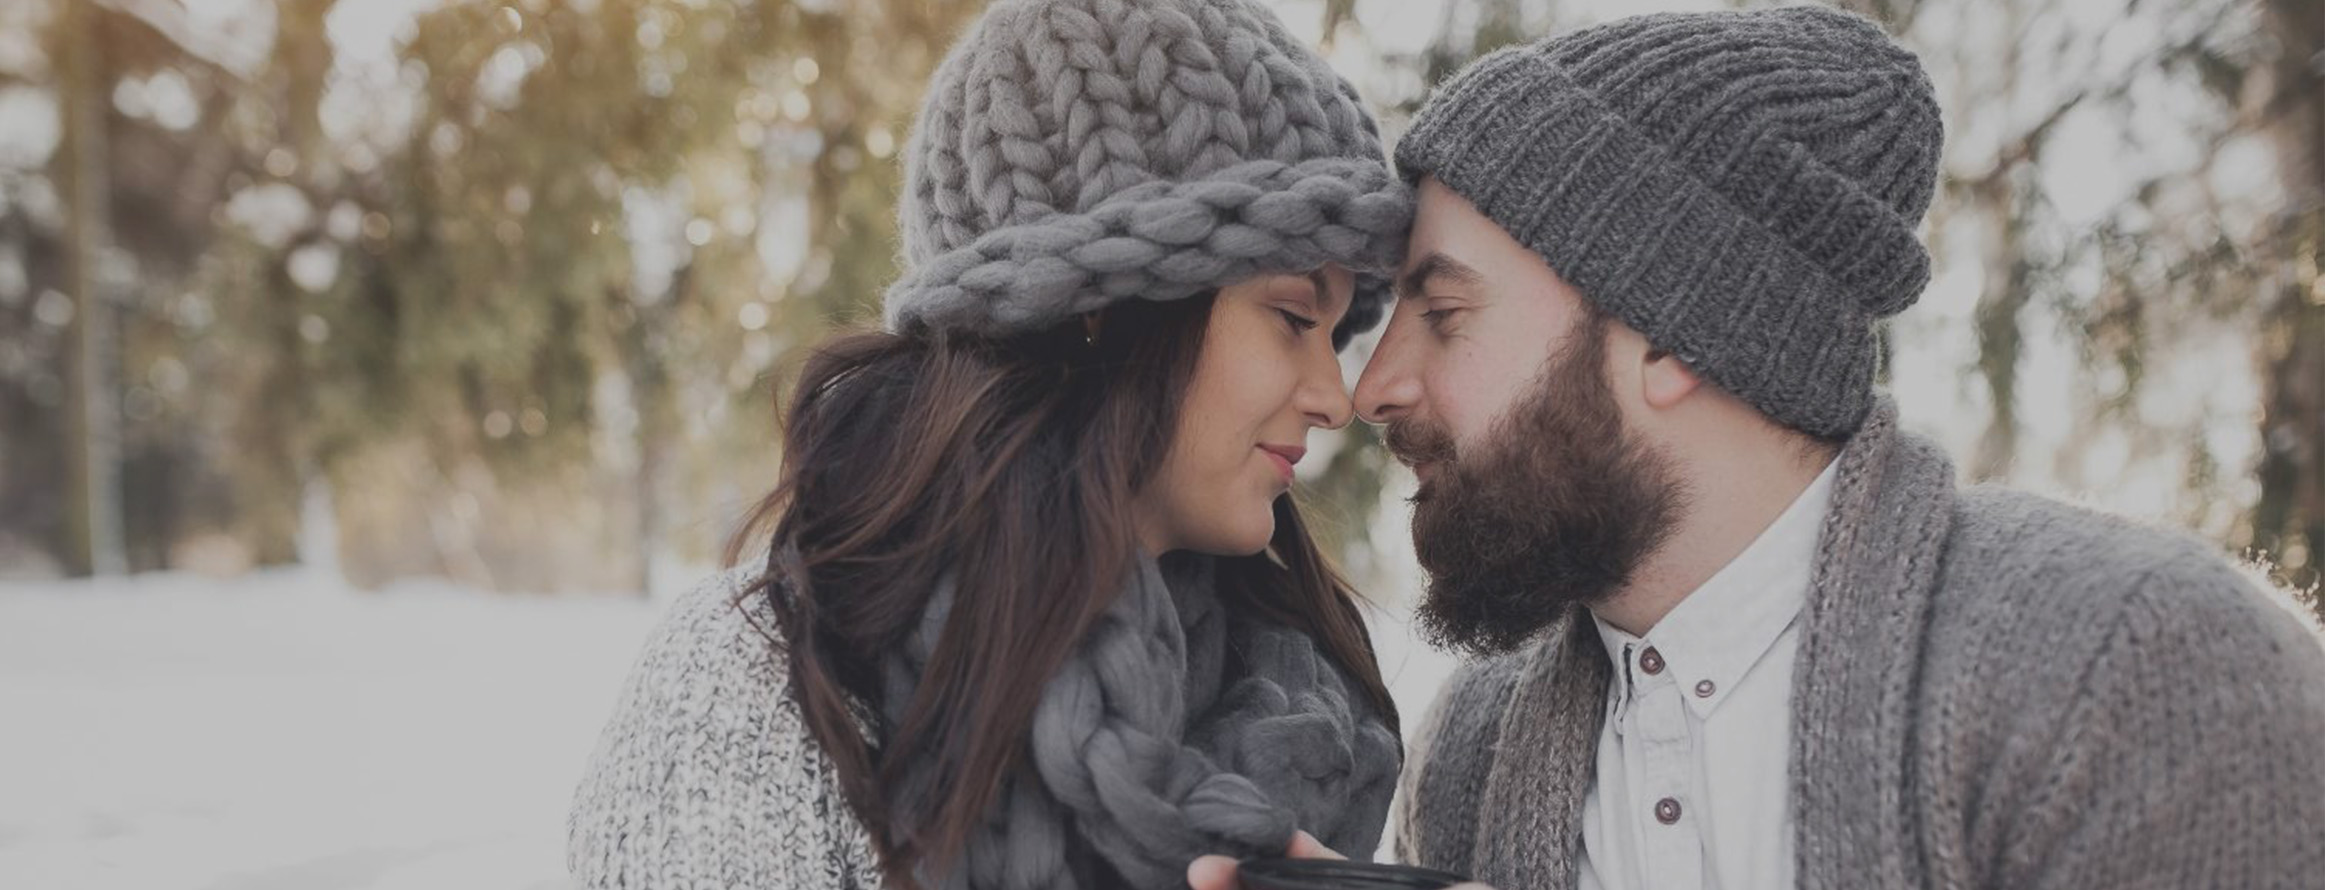 Experience Winter Romance in <br><strong>The Woods</strong>